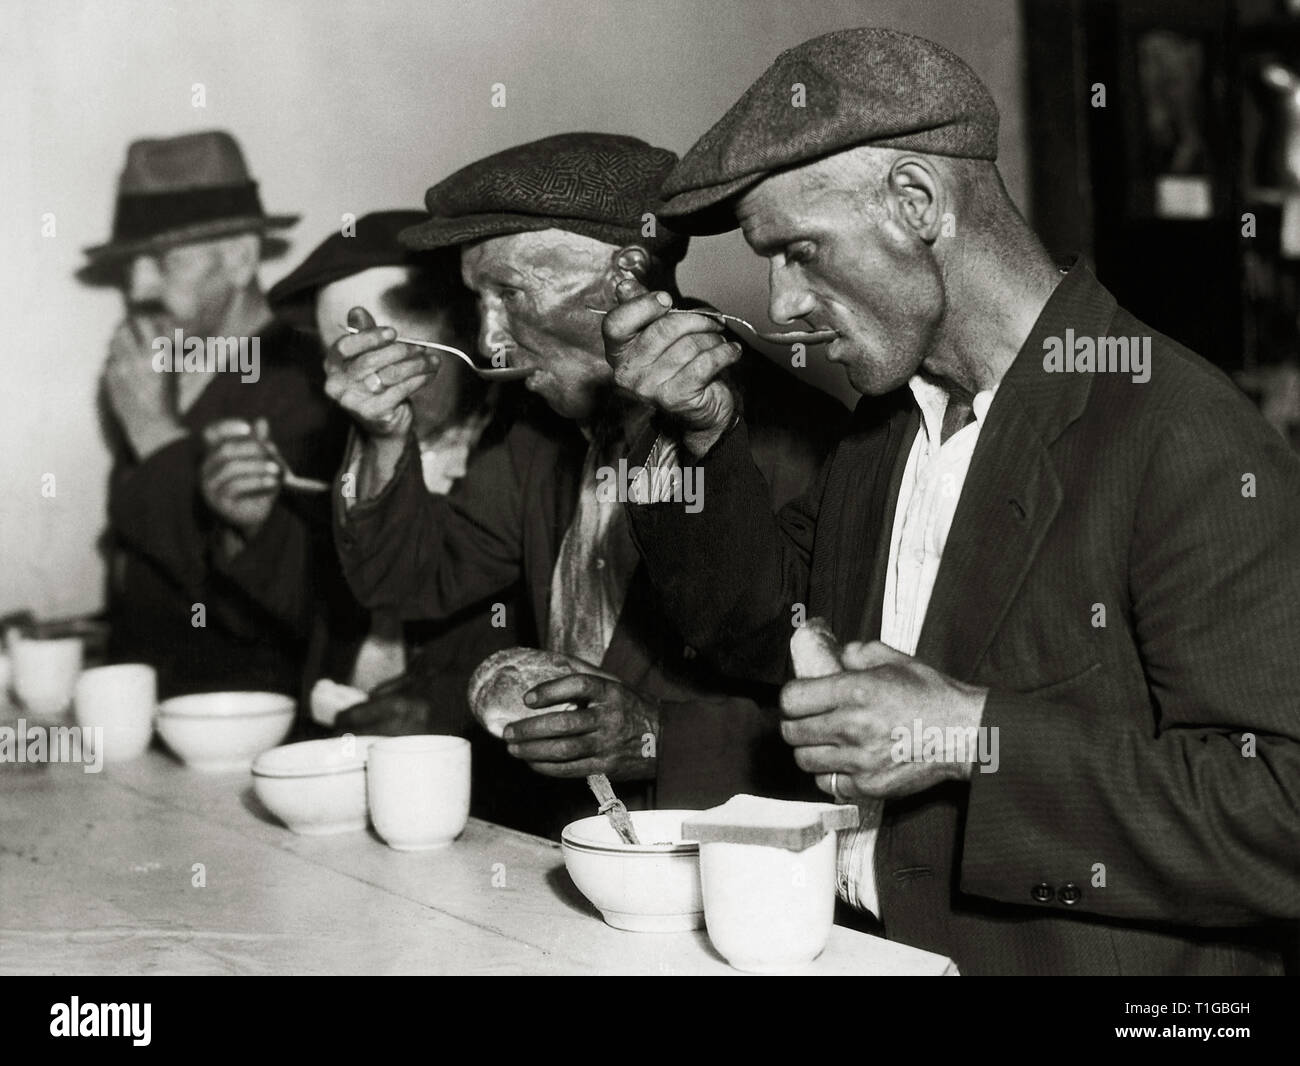 Men eating bread and soup in a bread line during The Great Depression in the U.S., circa 1929  File Reference # 1003_730THA - Stock Image